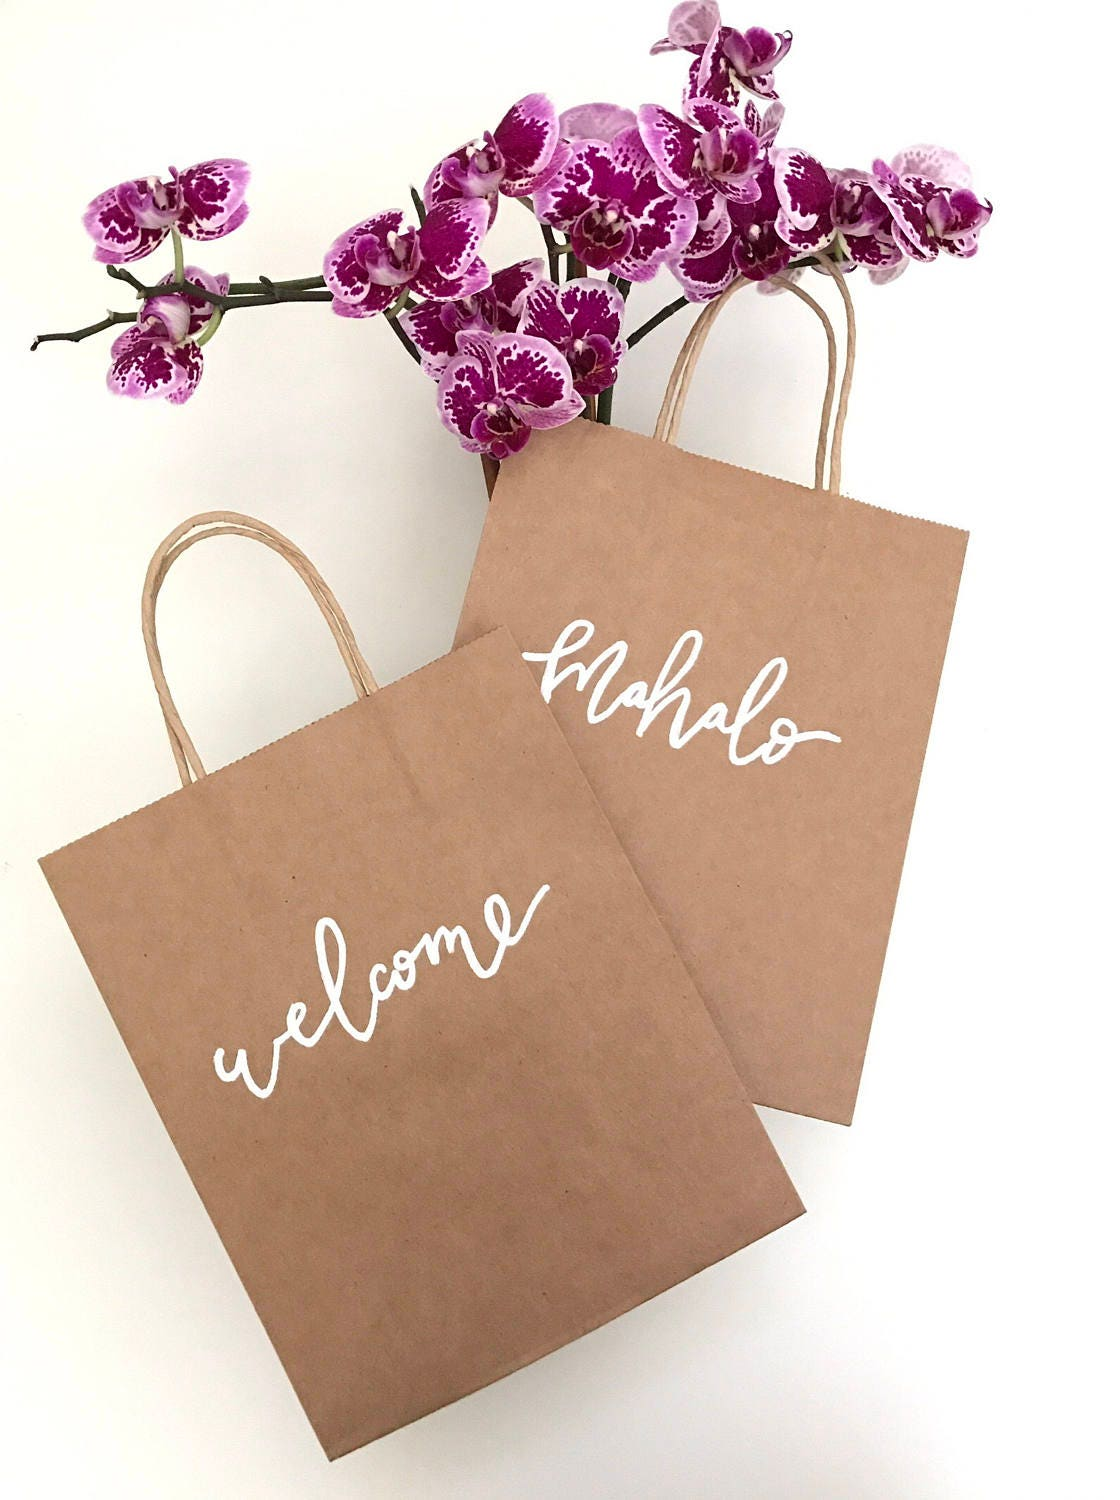 Custom gift bags destination wedding welcome bags thank you for Destination wedding gift bags